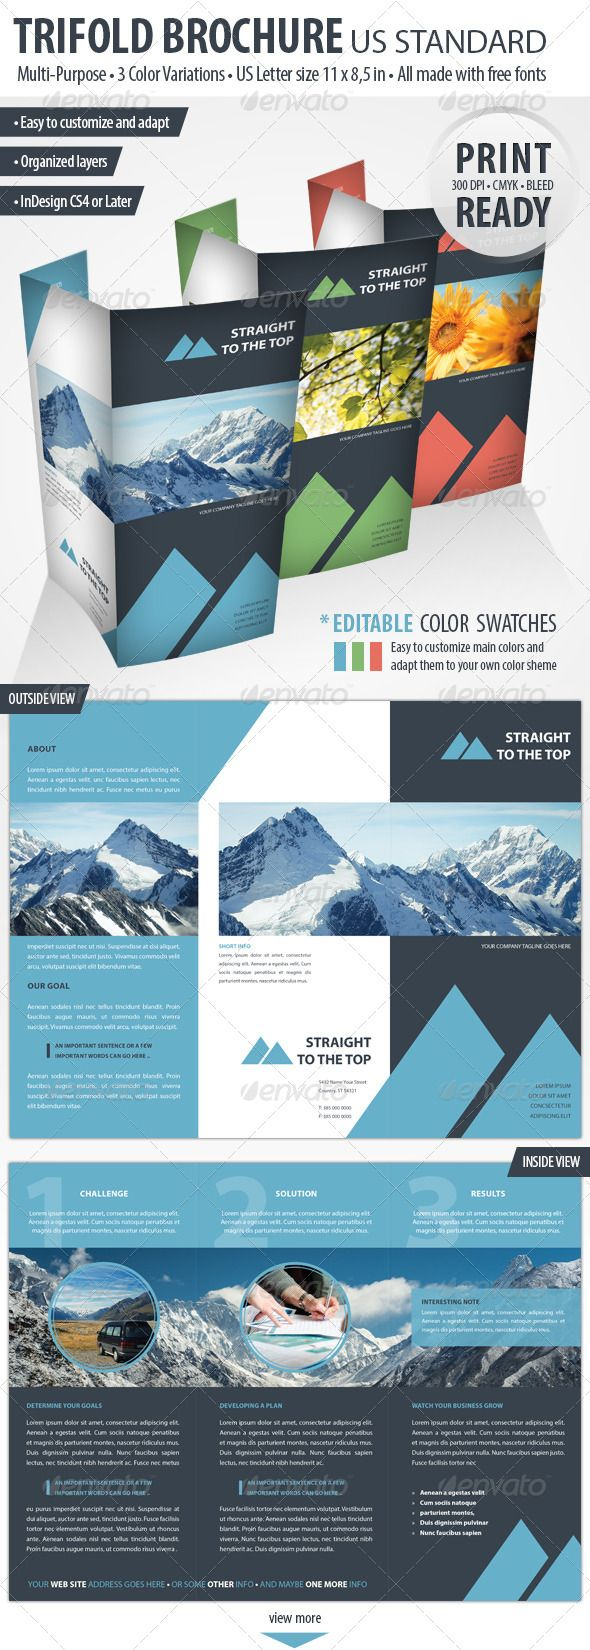 Best Travel Agency Brochure Designs Images On